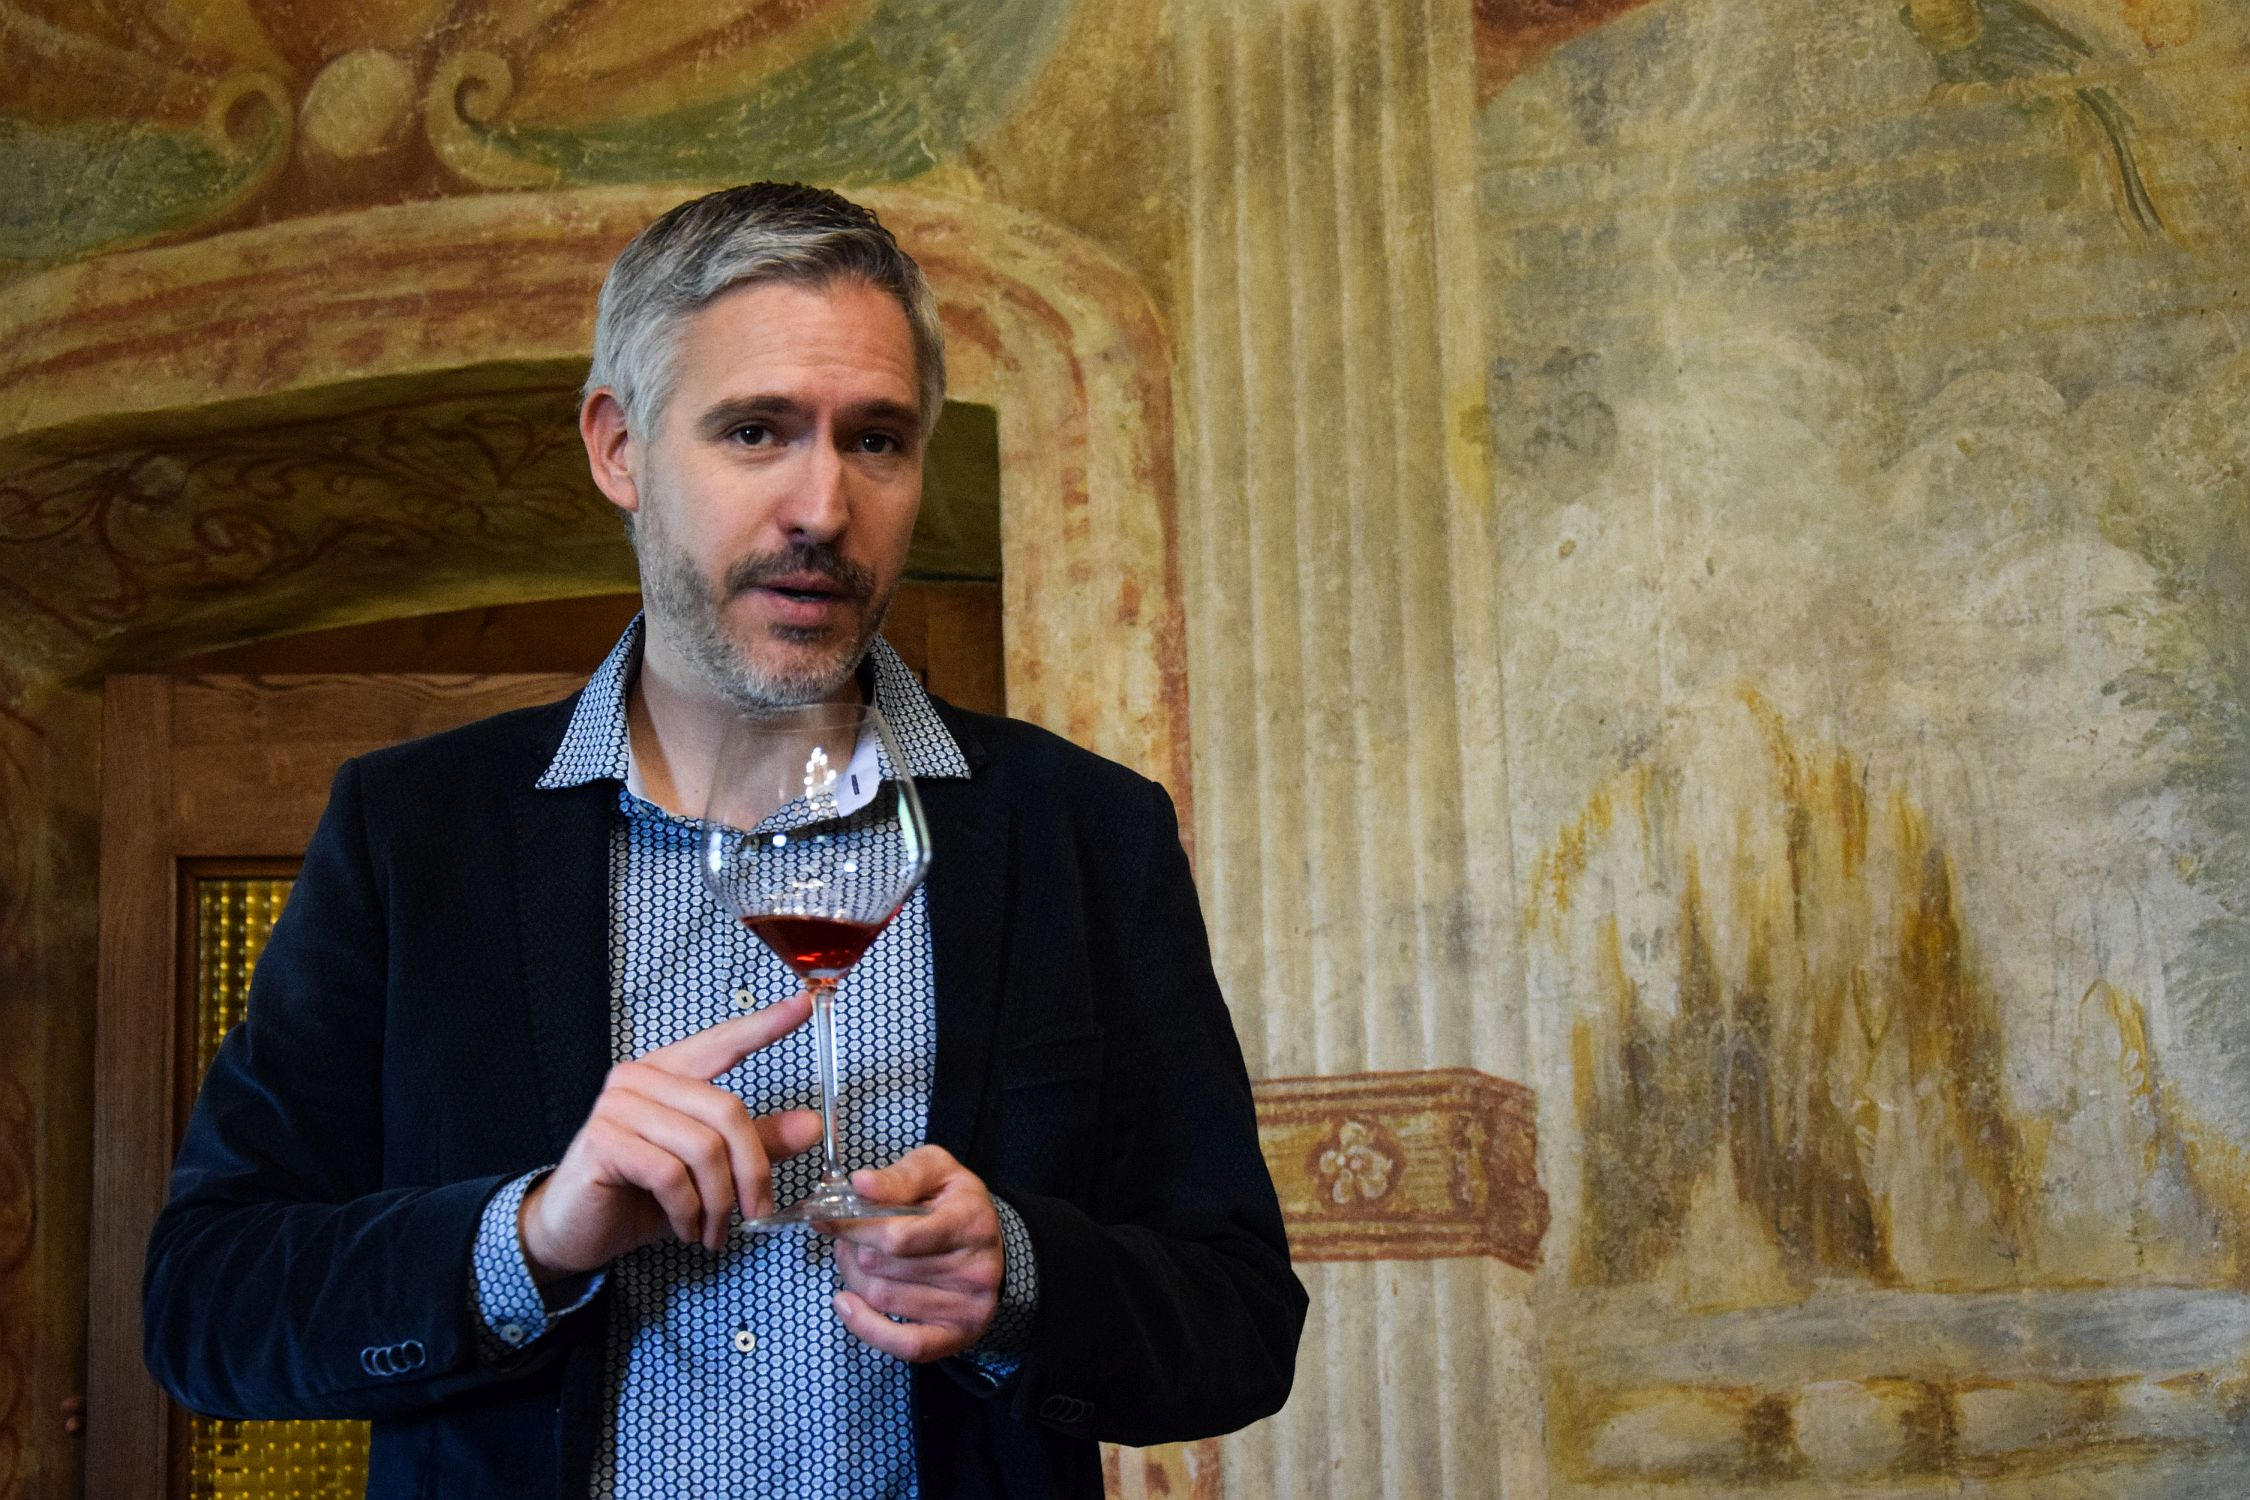 Oenologist & Perfumer Richard Pfister analyses a wine during Modri Les Noirs festival